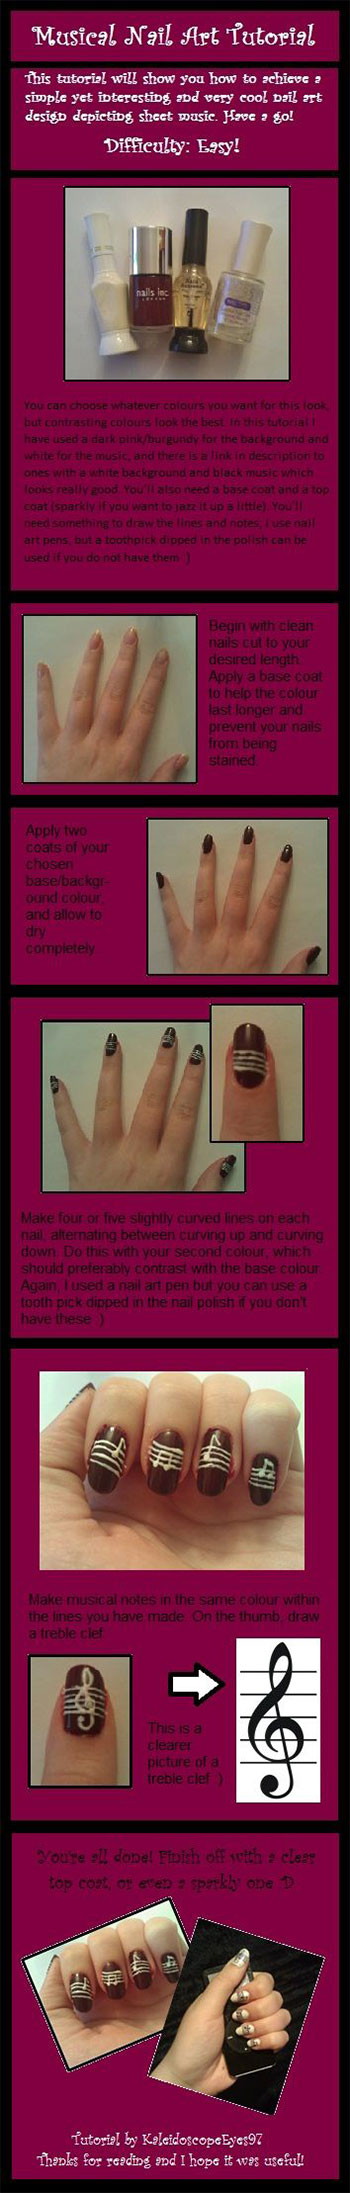 Simple-Music-Nail-Art-Tutorials-2014-For-Beginners-Learners-6